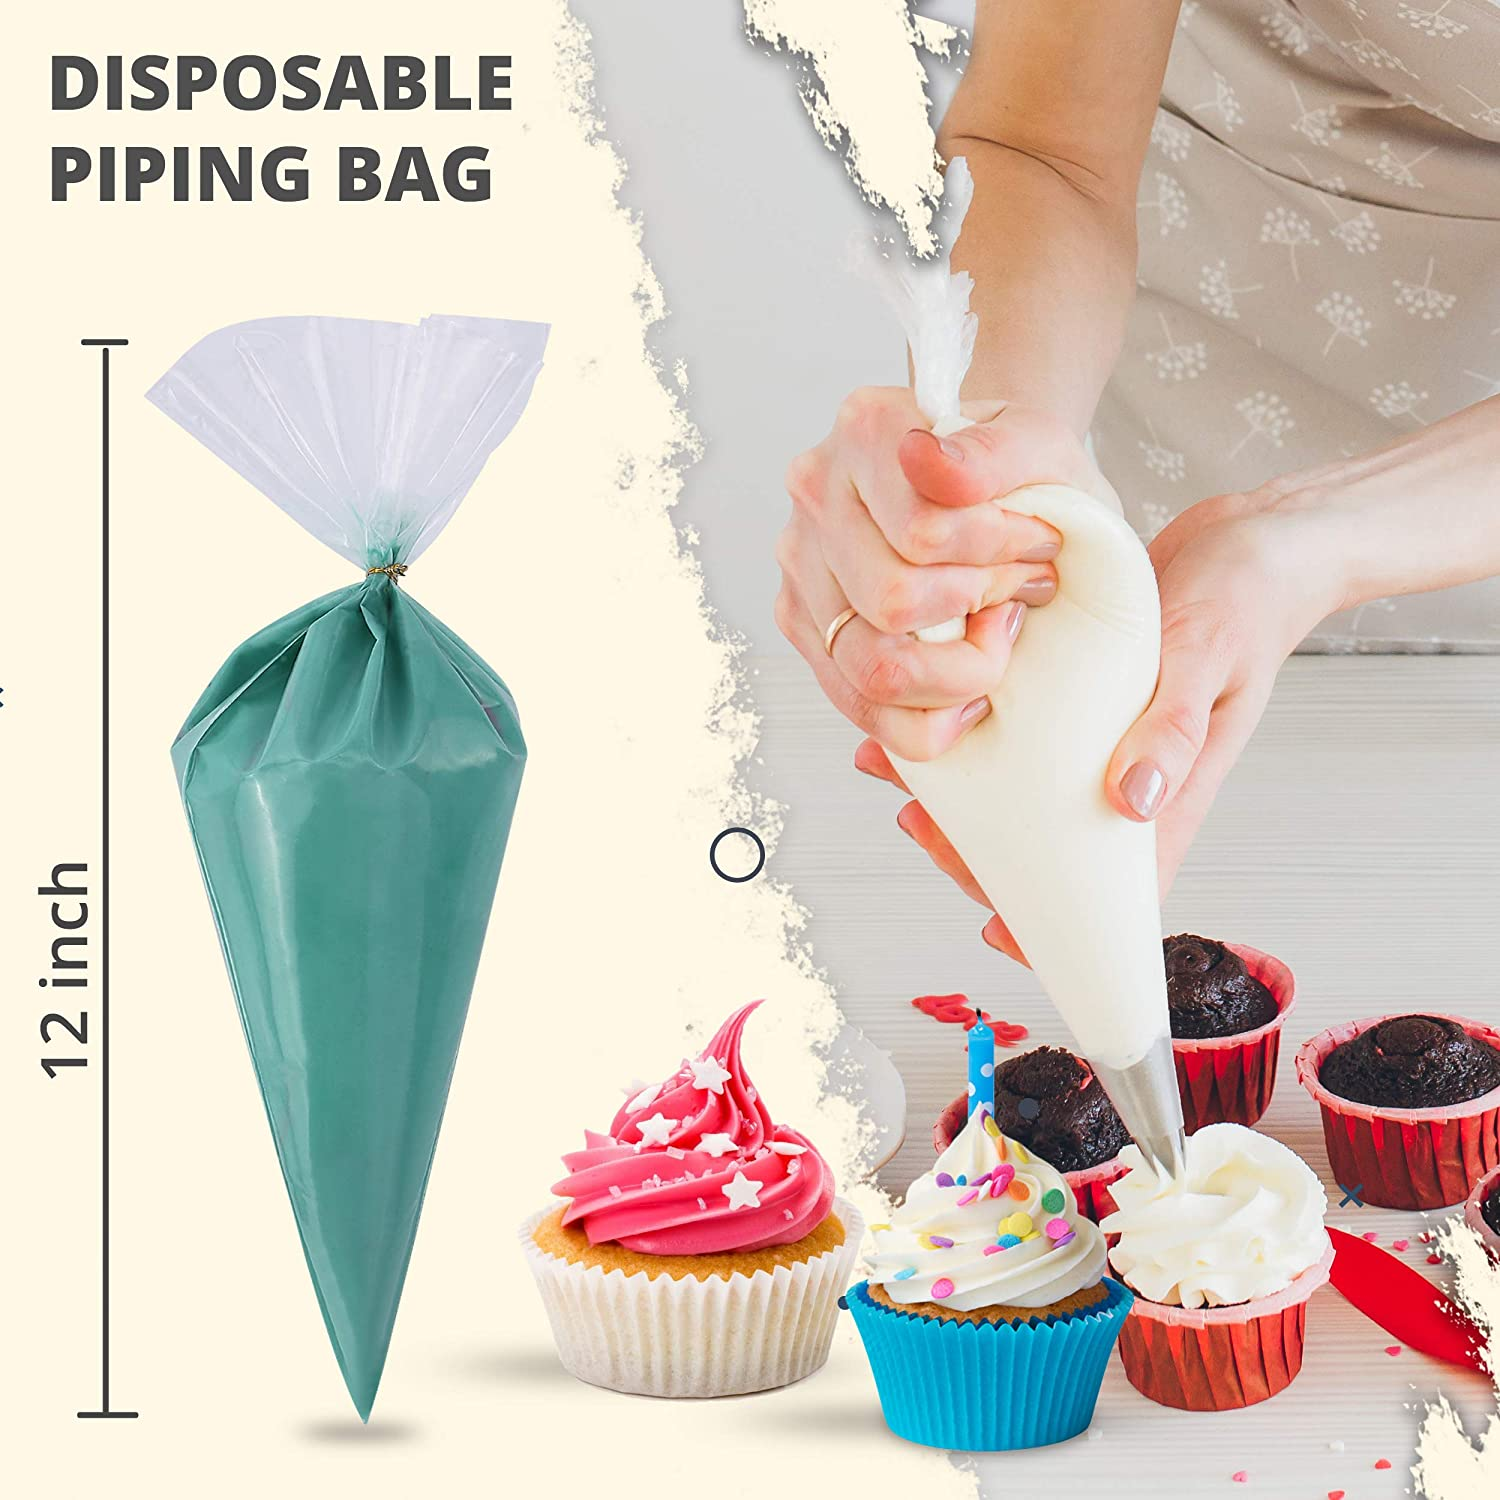 Cookie Cake Decorating Supplies Thickened 100 Pcs 14 Inch Heavy Duty Anti Burst Pastry Bags Piping Bags Disposable for Cream Icing Frosting